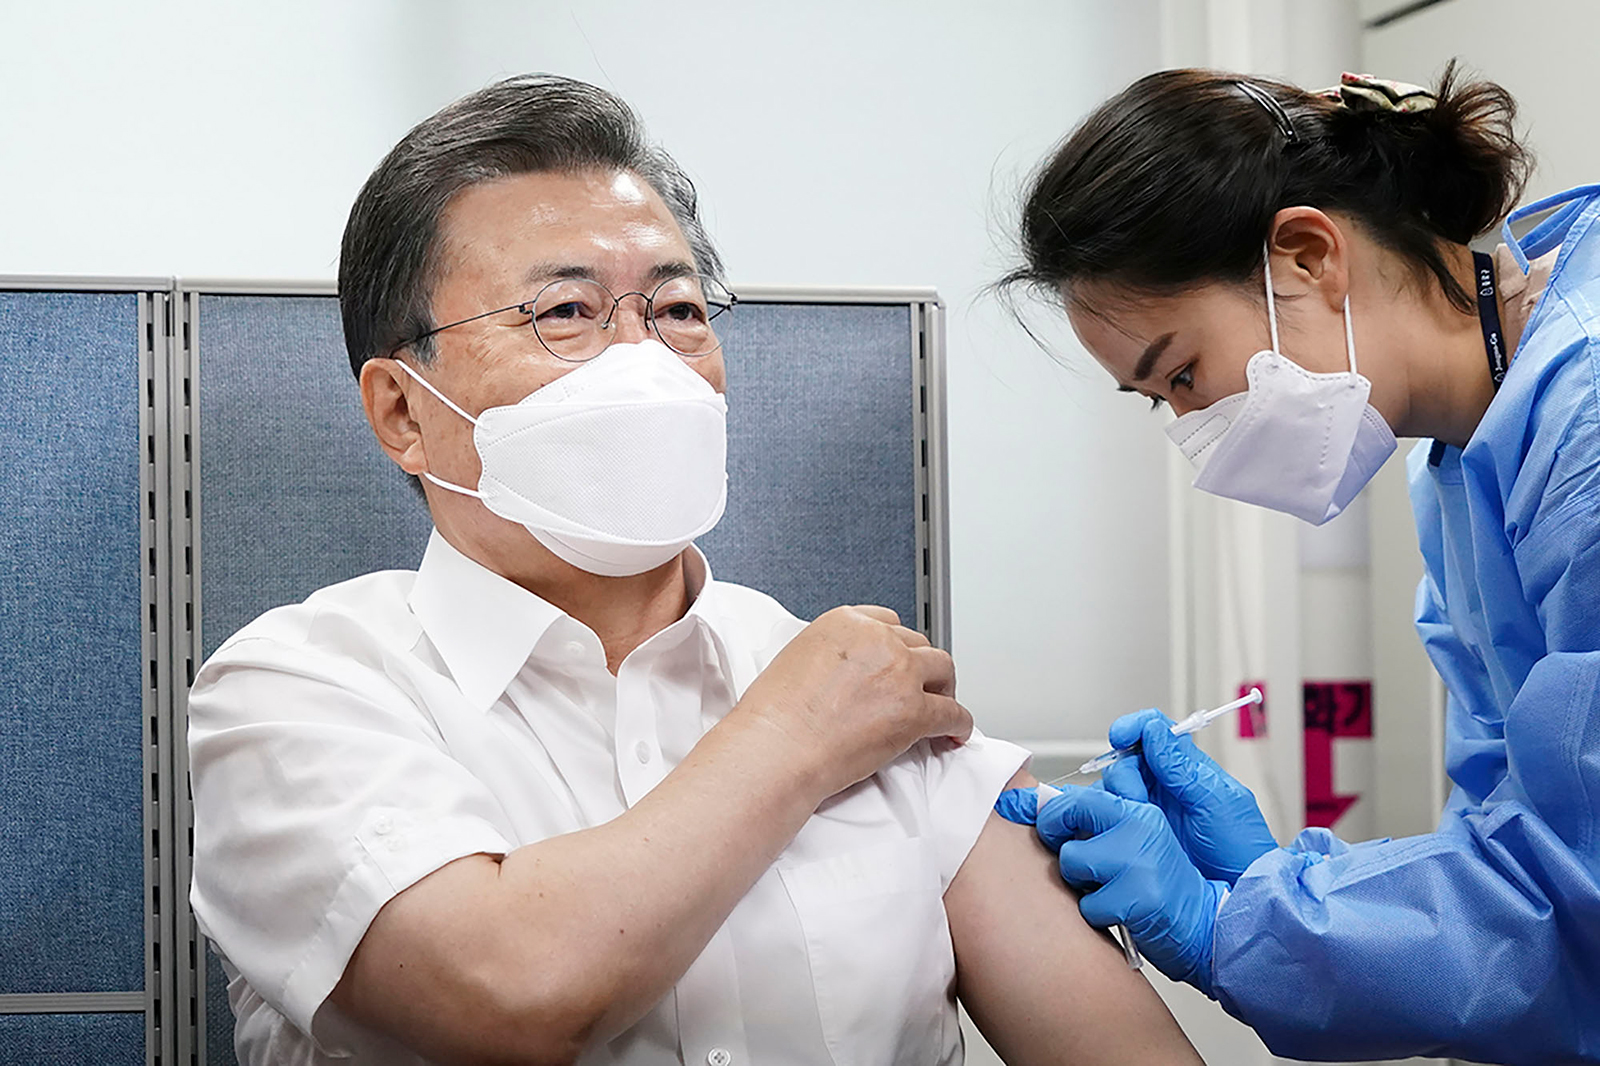 President Moon Jae-in receives a dose of the AstraZeneca Covid-19 vaccine in Seoul, South Korea, on March 23.